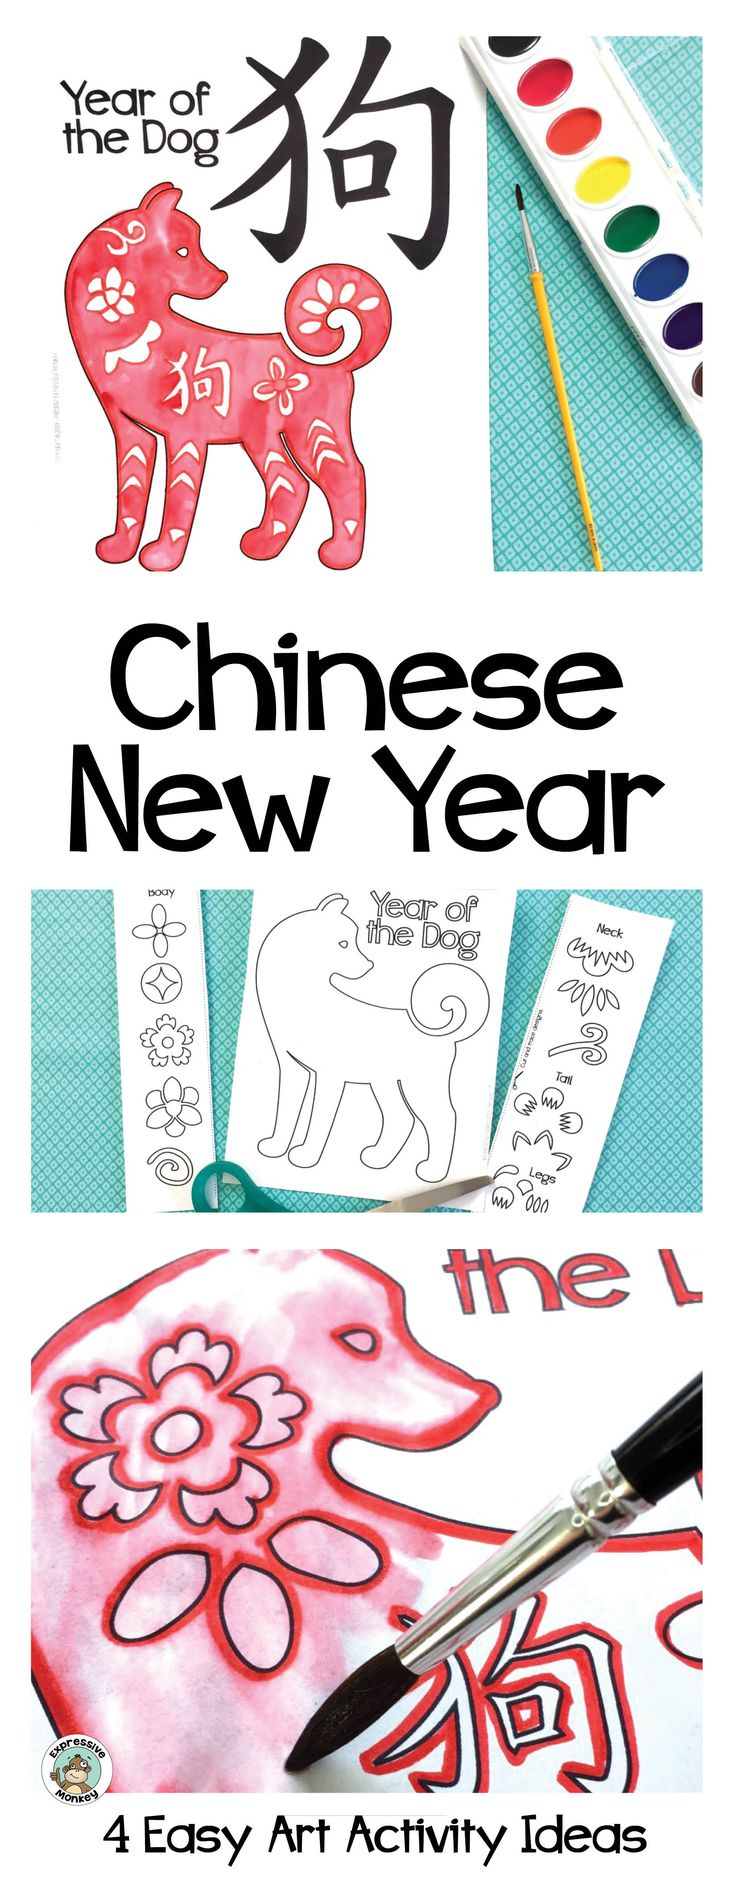 Celebrate the Chinese New Year by making a Year of the Dog craft.  Add Chinese designs to the dog and use one of the 4 easy techniques demonstrated to add some color.